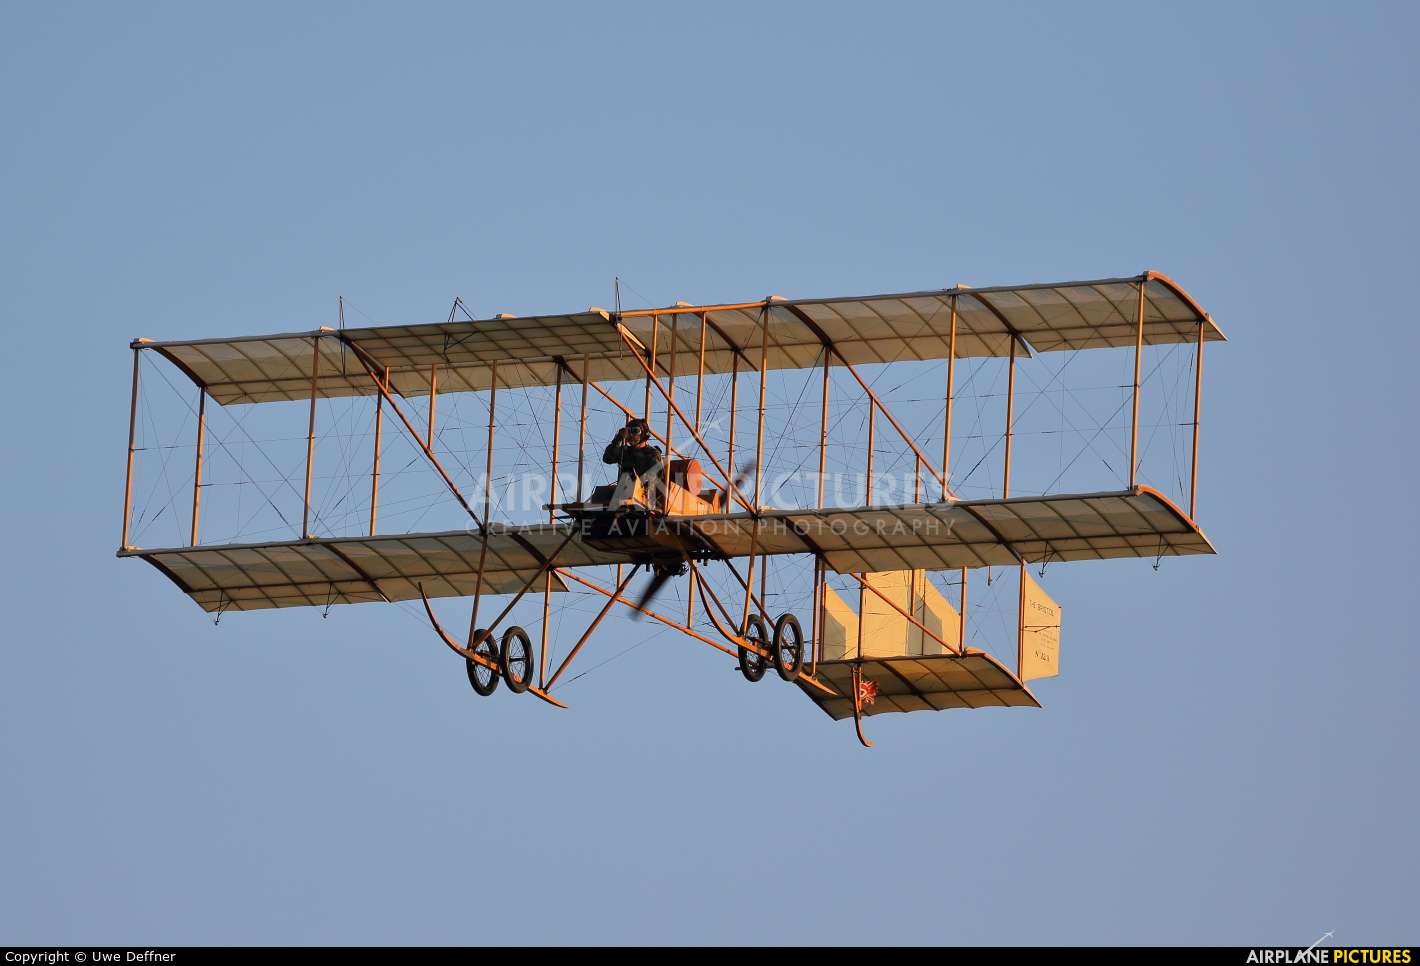 The Shuttleworth Collection - aircraft at Old Warden